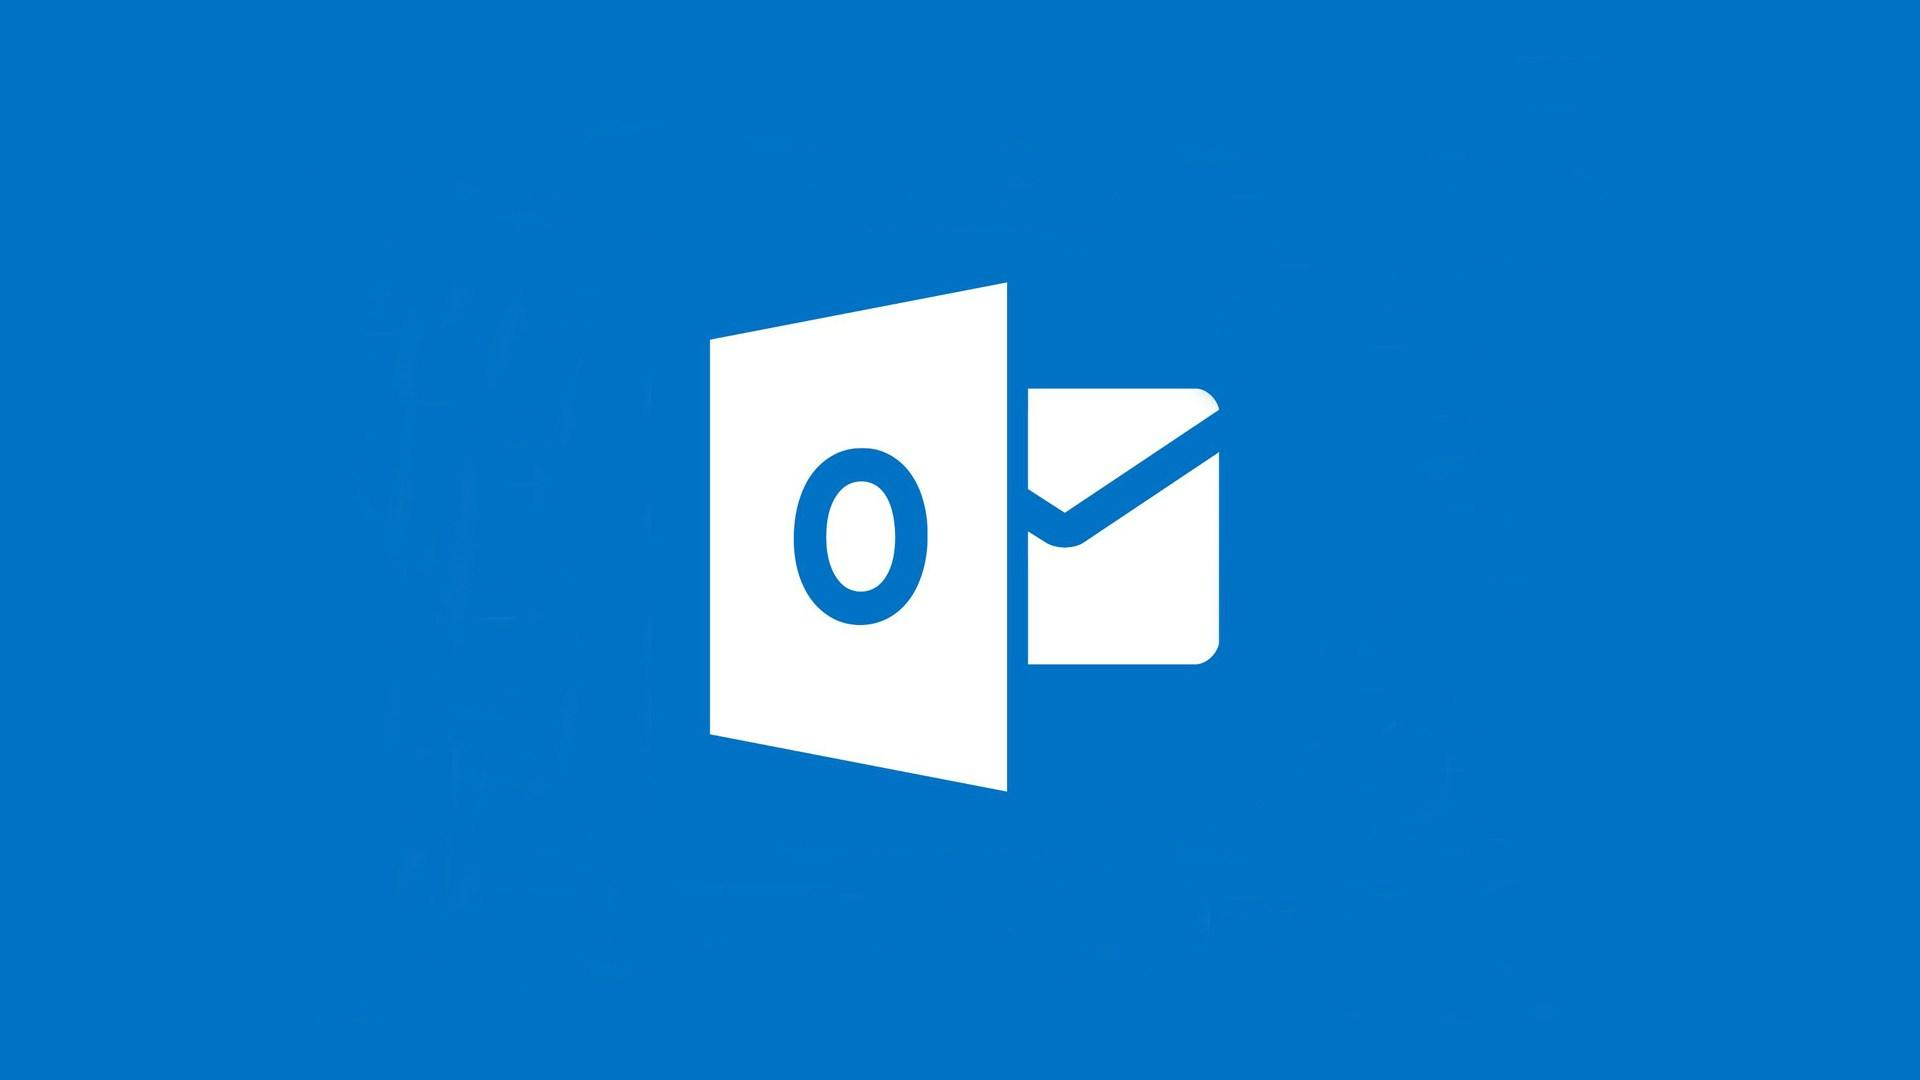 Logotipo de Outlook con fondo azul